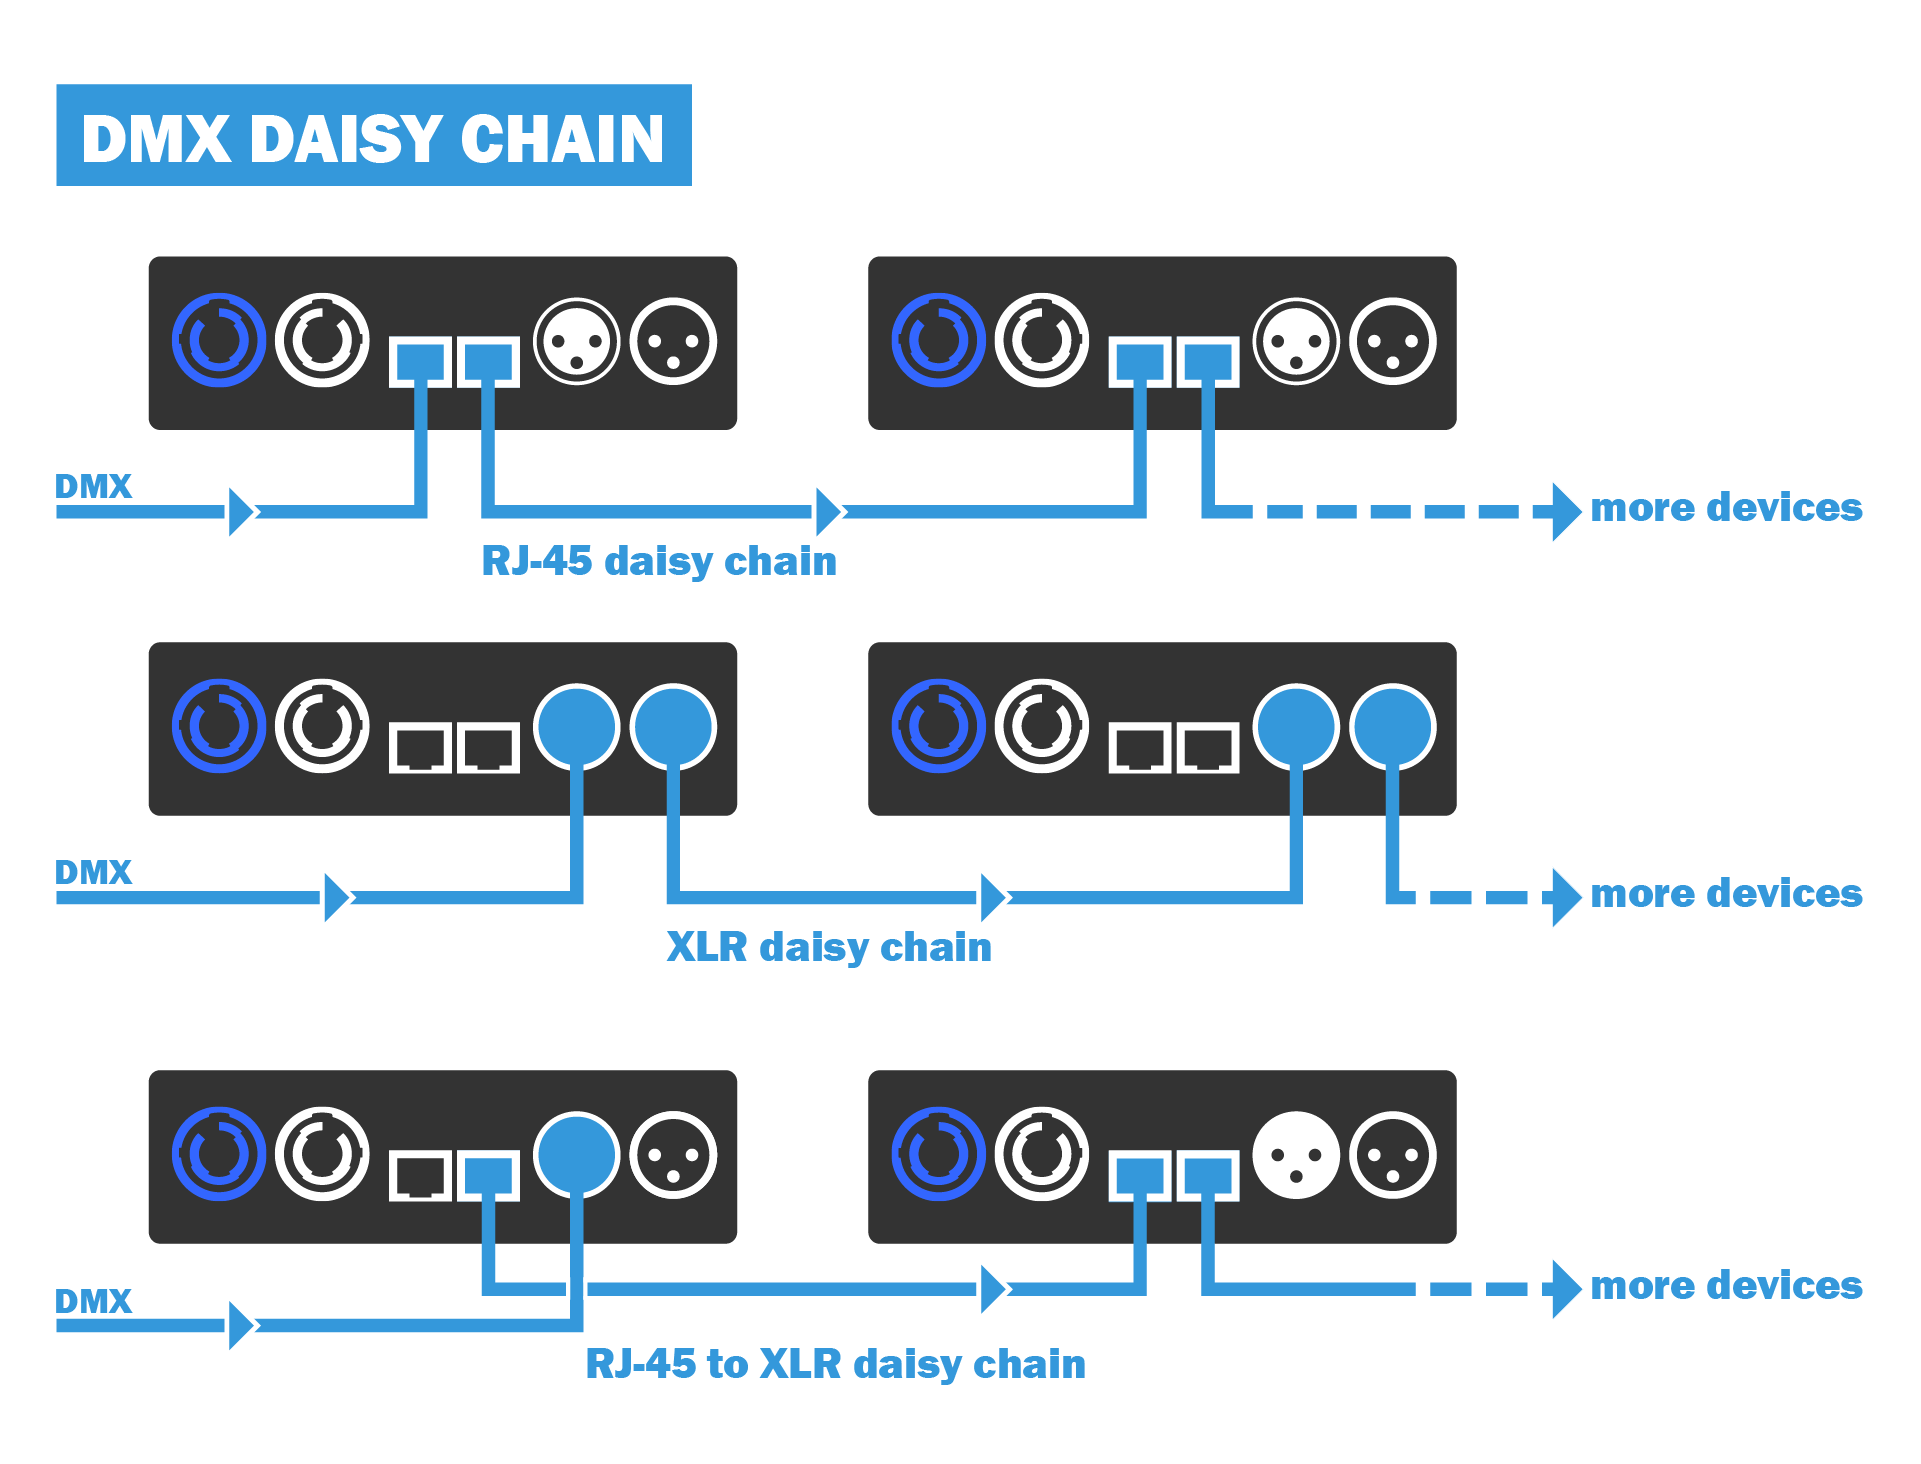 DMX daisy chain scheme of more mr. dimmer devices